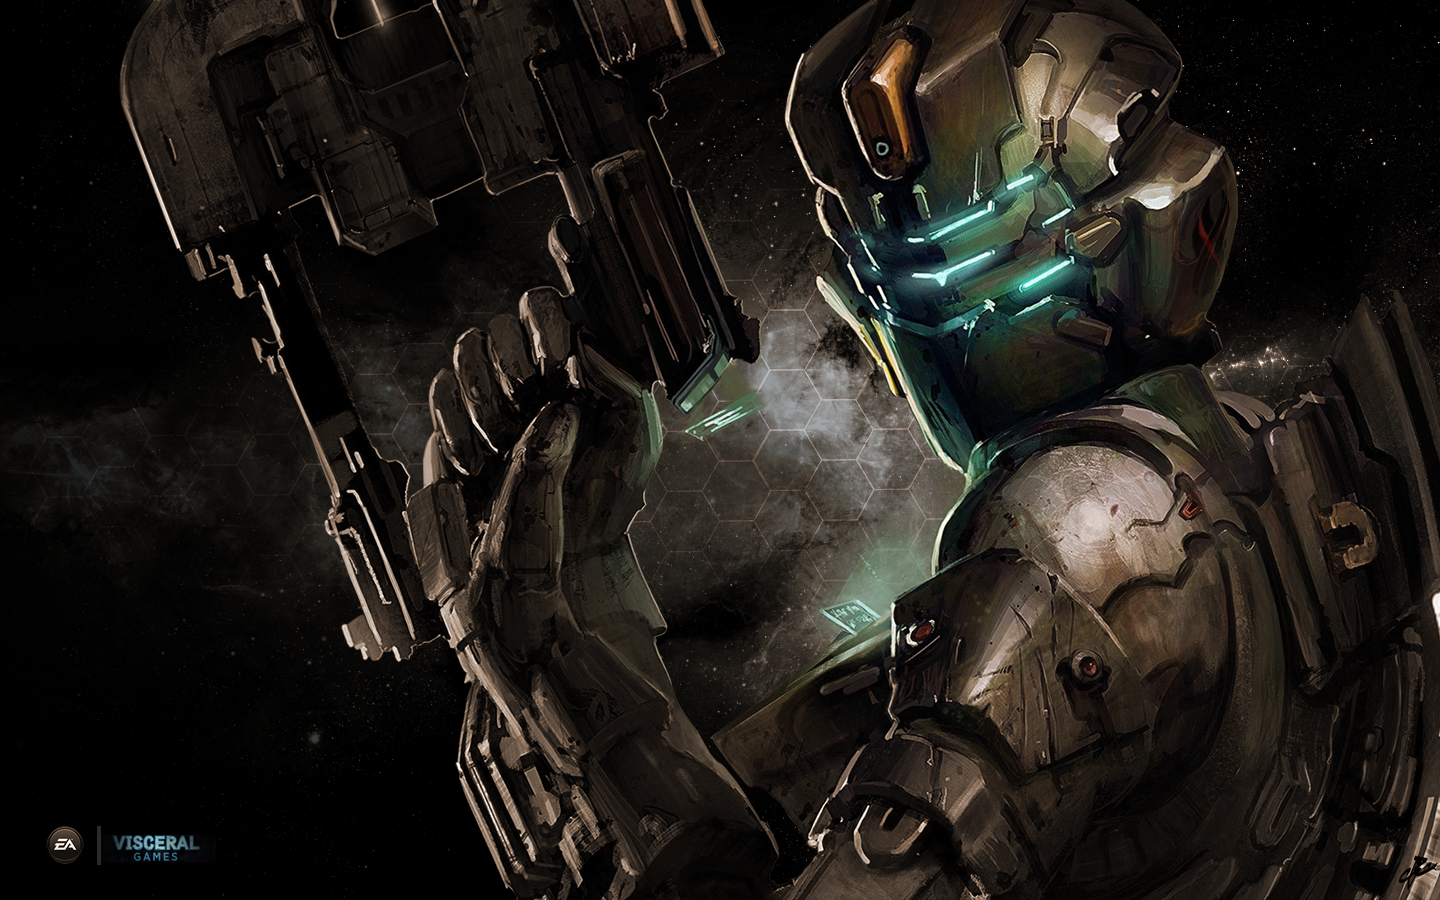 fs70f2010311f4dead space 2 wallpaper by cporsdesigns d32eq87png 1440x900